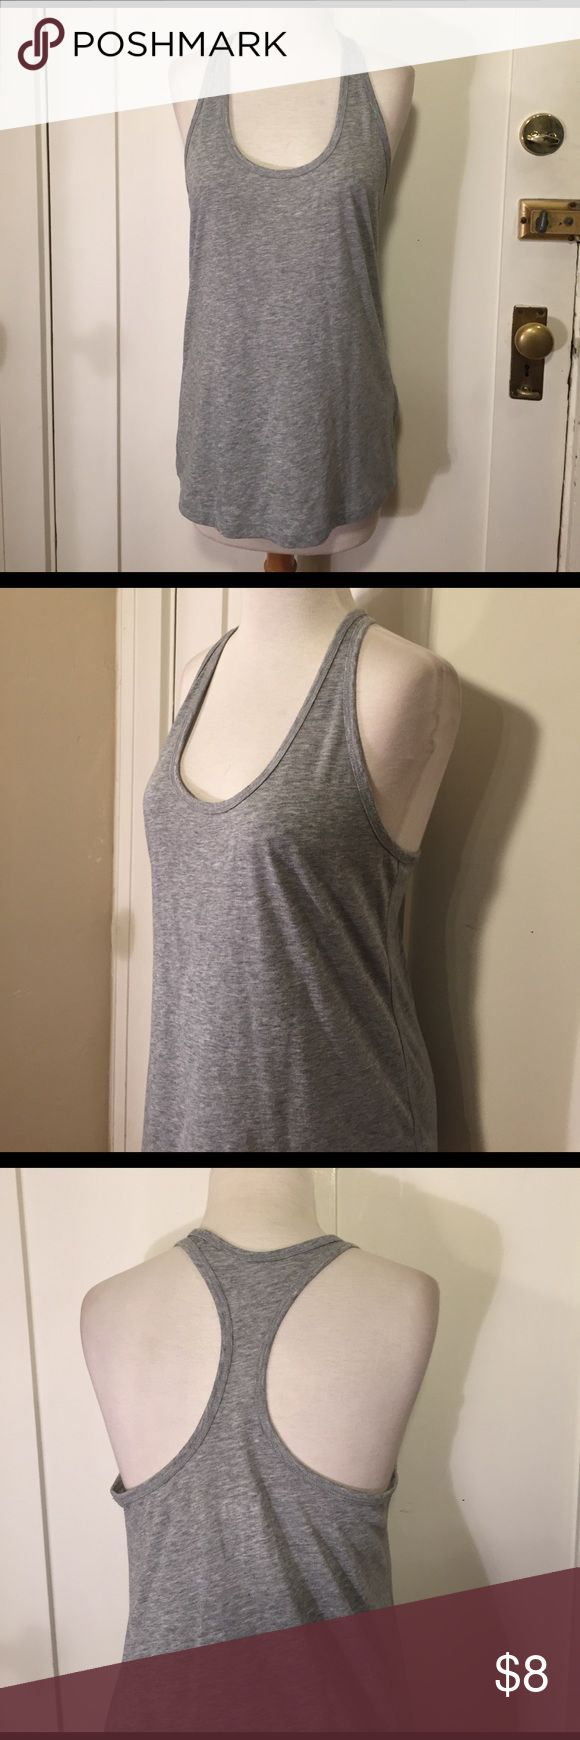 Nike dri-fit loose fit Gray razorback tank This is a gray loose fit razorback tank from Nike, good condition minor wear. See pictures for details. Be sure and check out other items in closet and bundle to receive discounts. Nike Tops Tank Tops